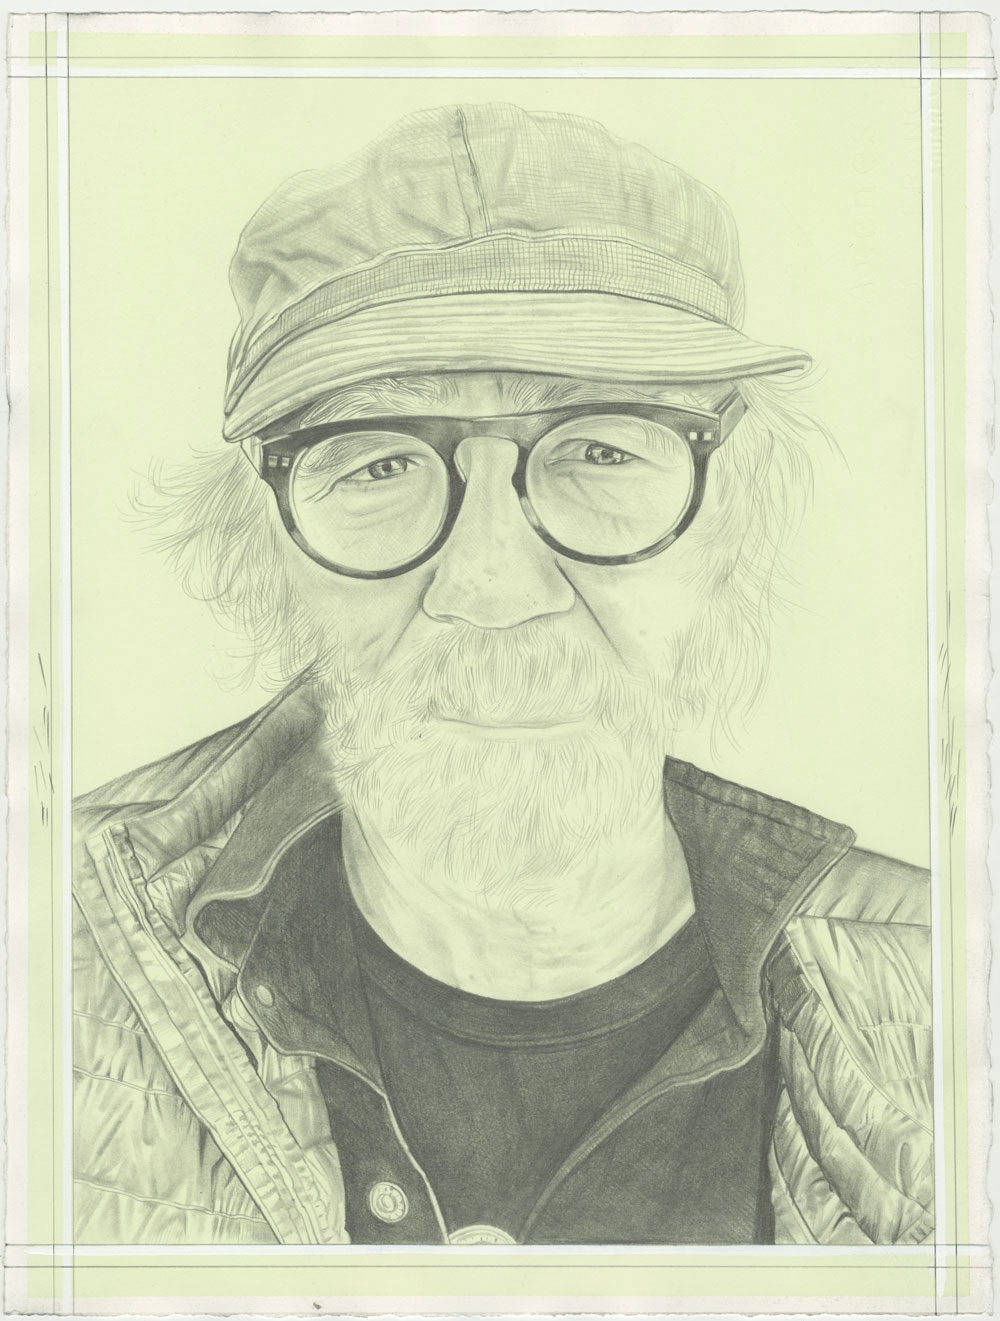 Portrait of Paul McCarthy, pencil on paper by Phong H. Bui.